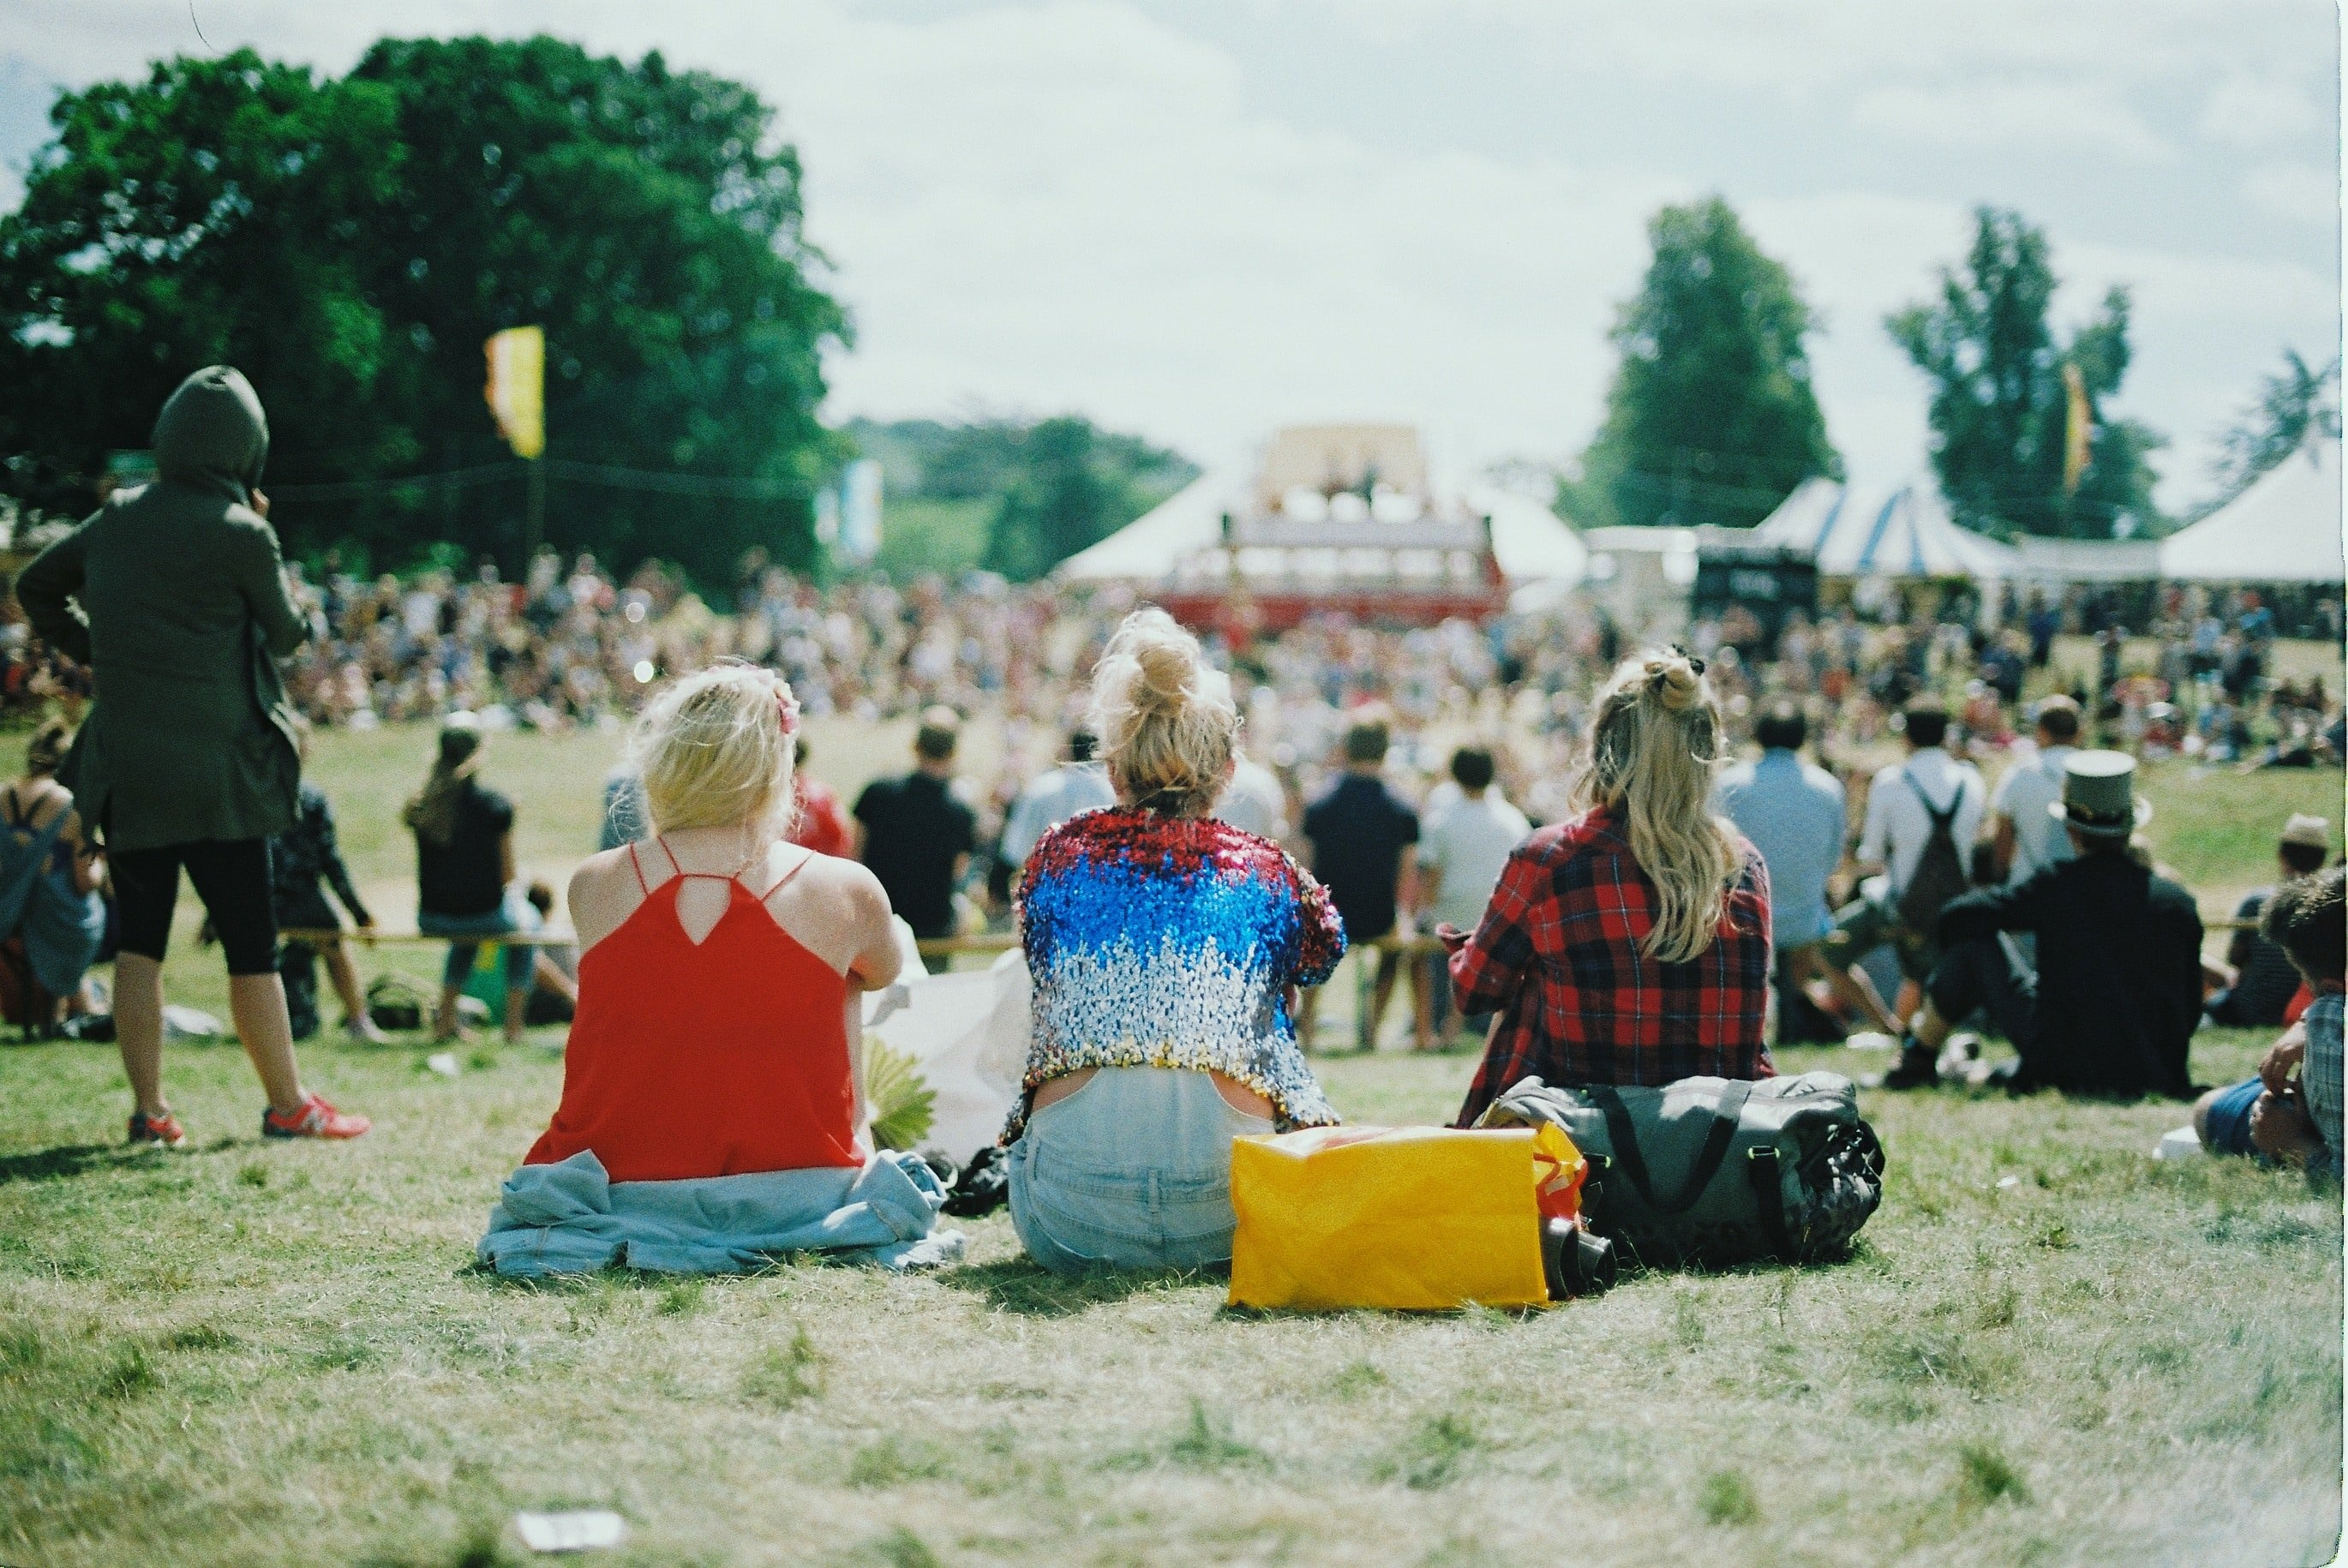 Through mud, sweat and blisters – the toils of being trendy at festivals